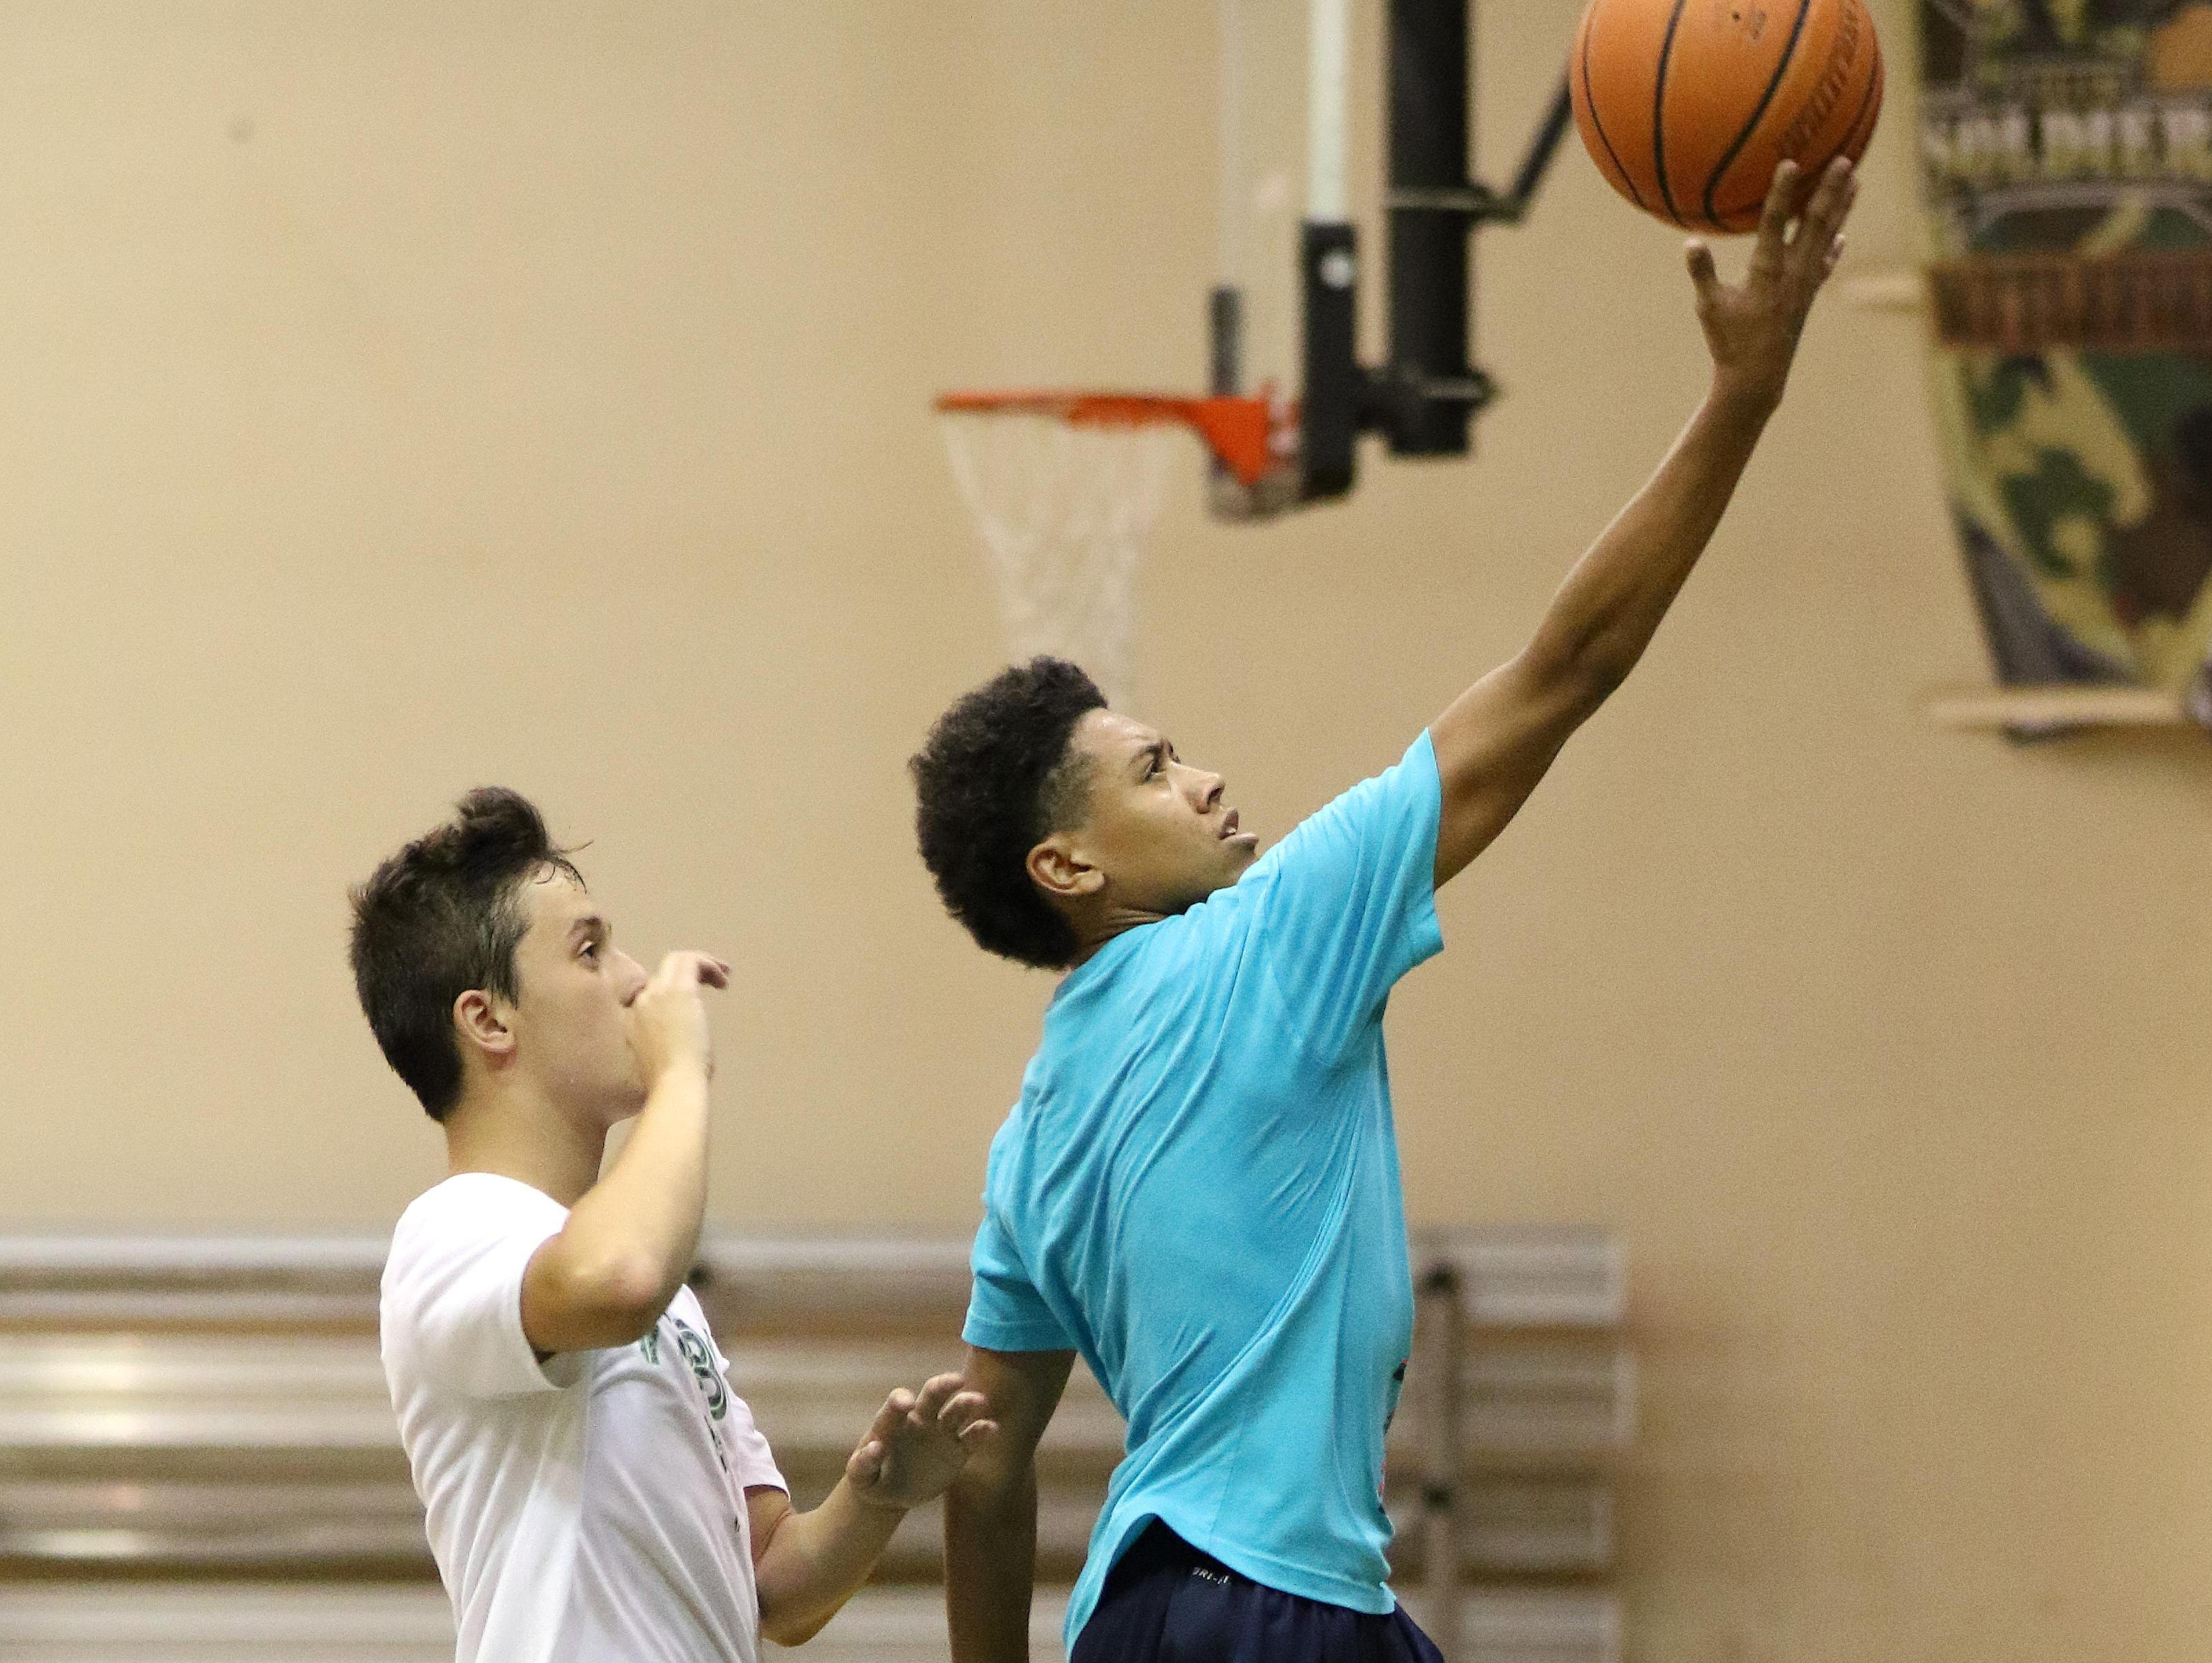 Jaden Nielsen, right, who will be a freshman at South Salem High School in the fall, practices on Tuesday, July 7, 2015, at The Hoop in Salem. Nielsen has been invited to participate in a prestigious basketball camp run by NBA All-Star Chris Paul.